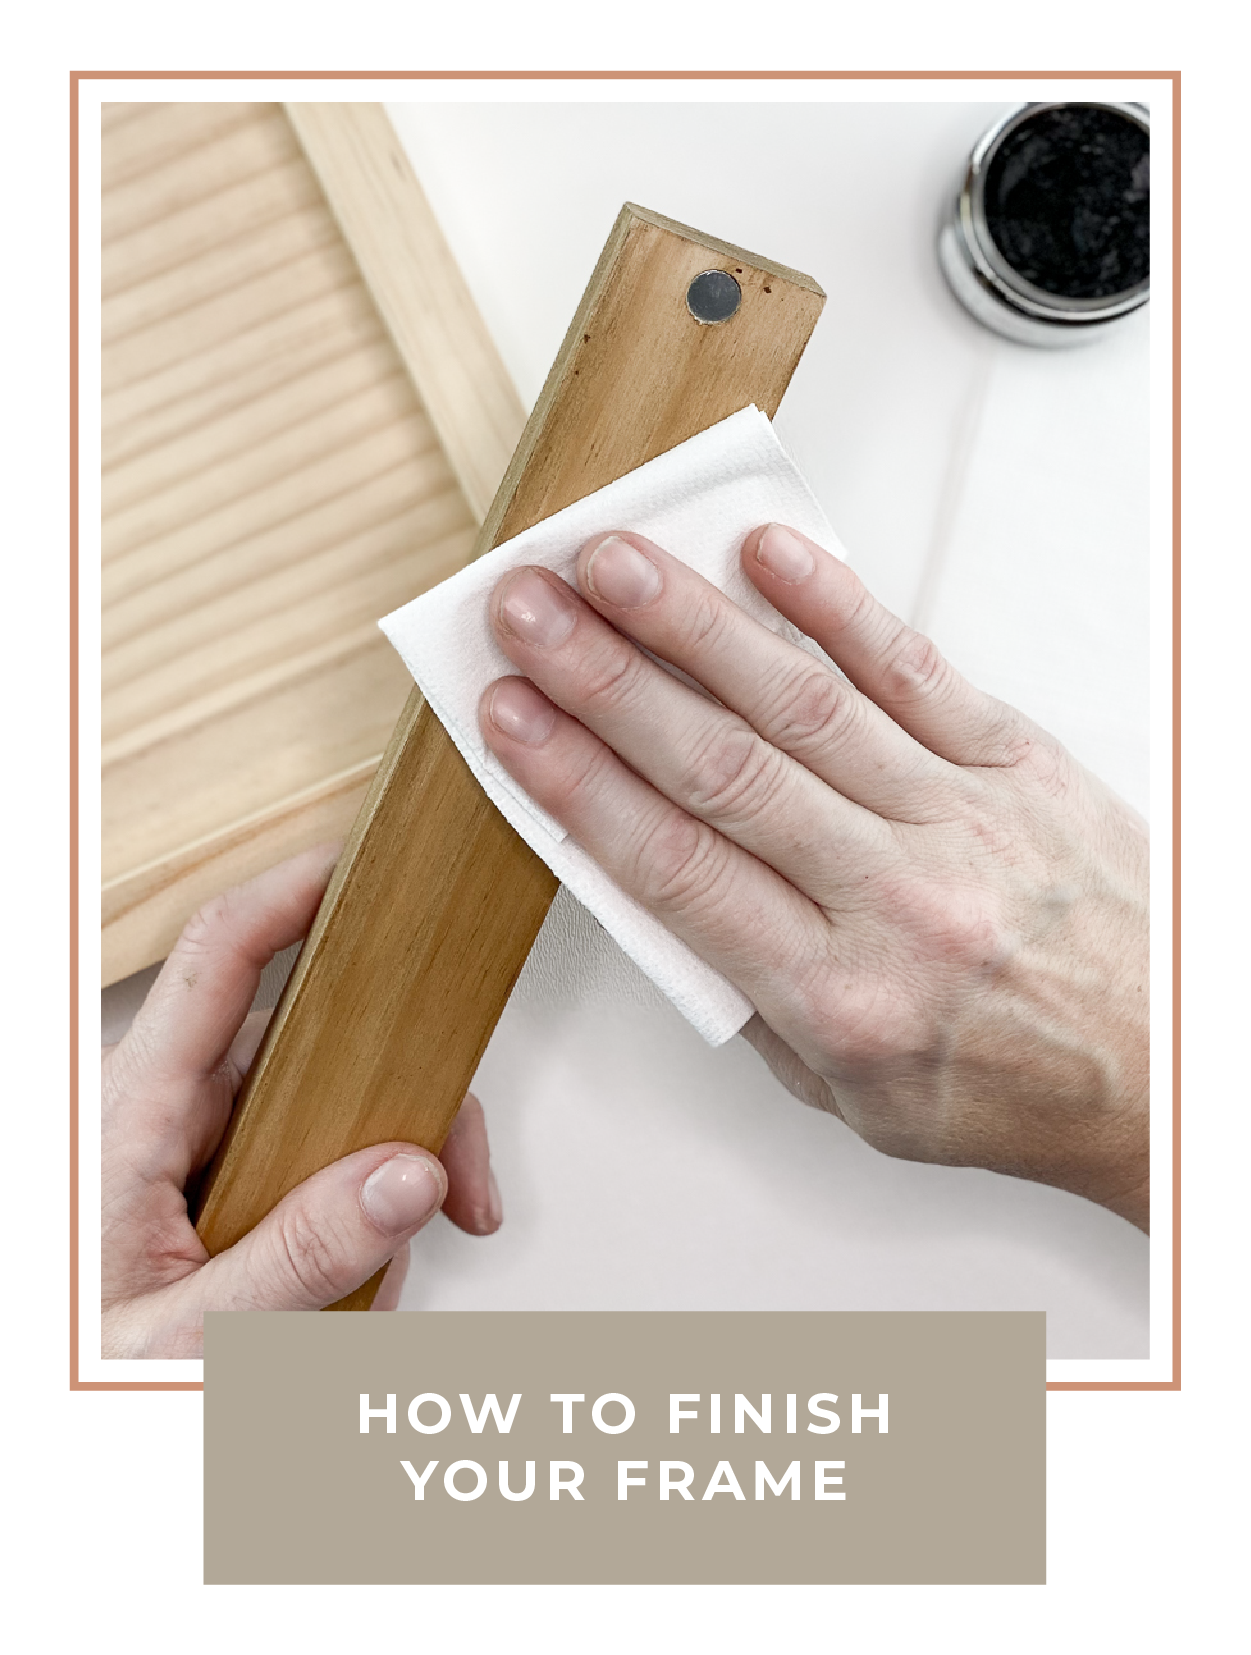 How to finish your frame